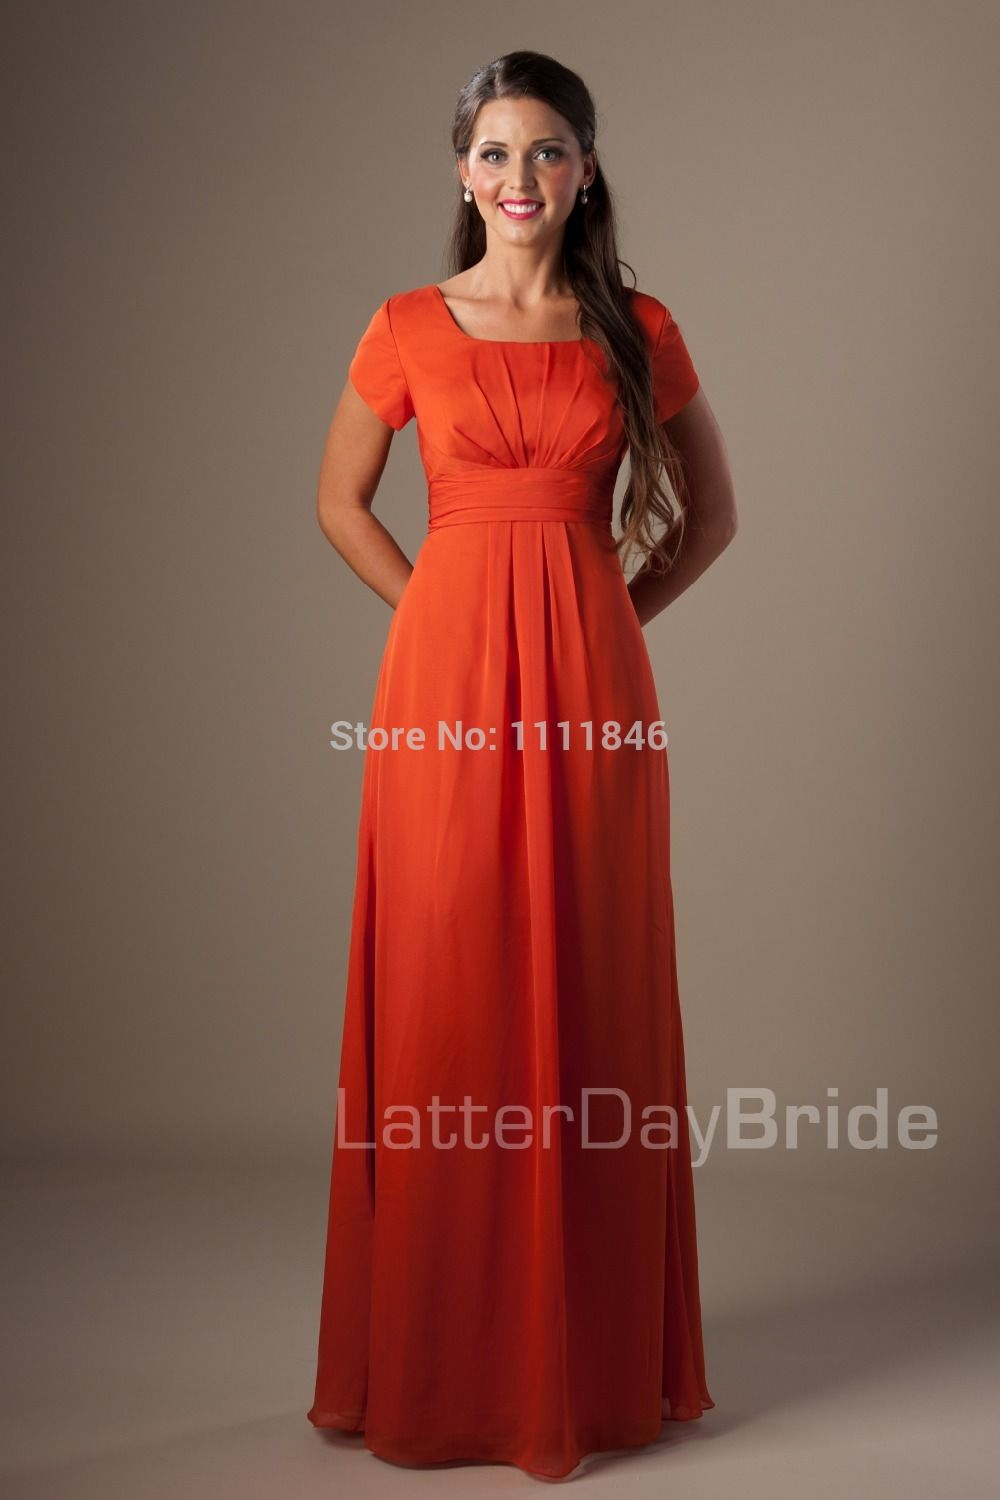 df8a8f646d76 ... length burnt orange bridesmaid dresses short sleeves chiffon modest  bridesmaid dress for women formal gowns,High Quality dresses dress up,China  dresses ...